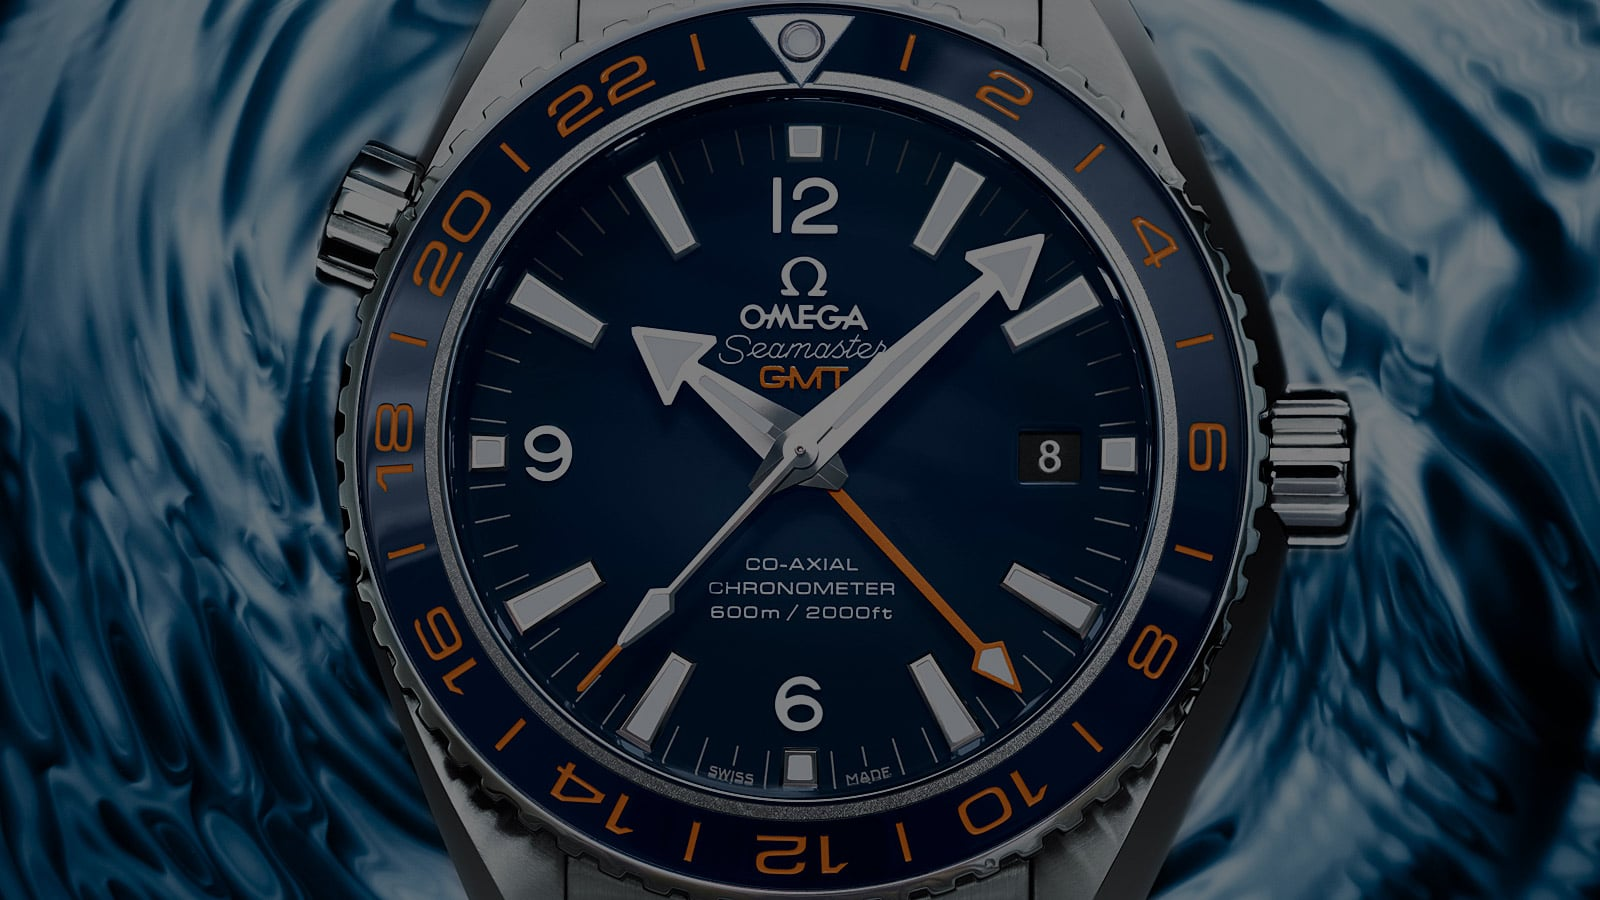 Seamaster Planet Ocean 600m Goodplanet Edition - Video - 2143